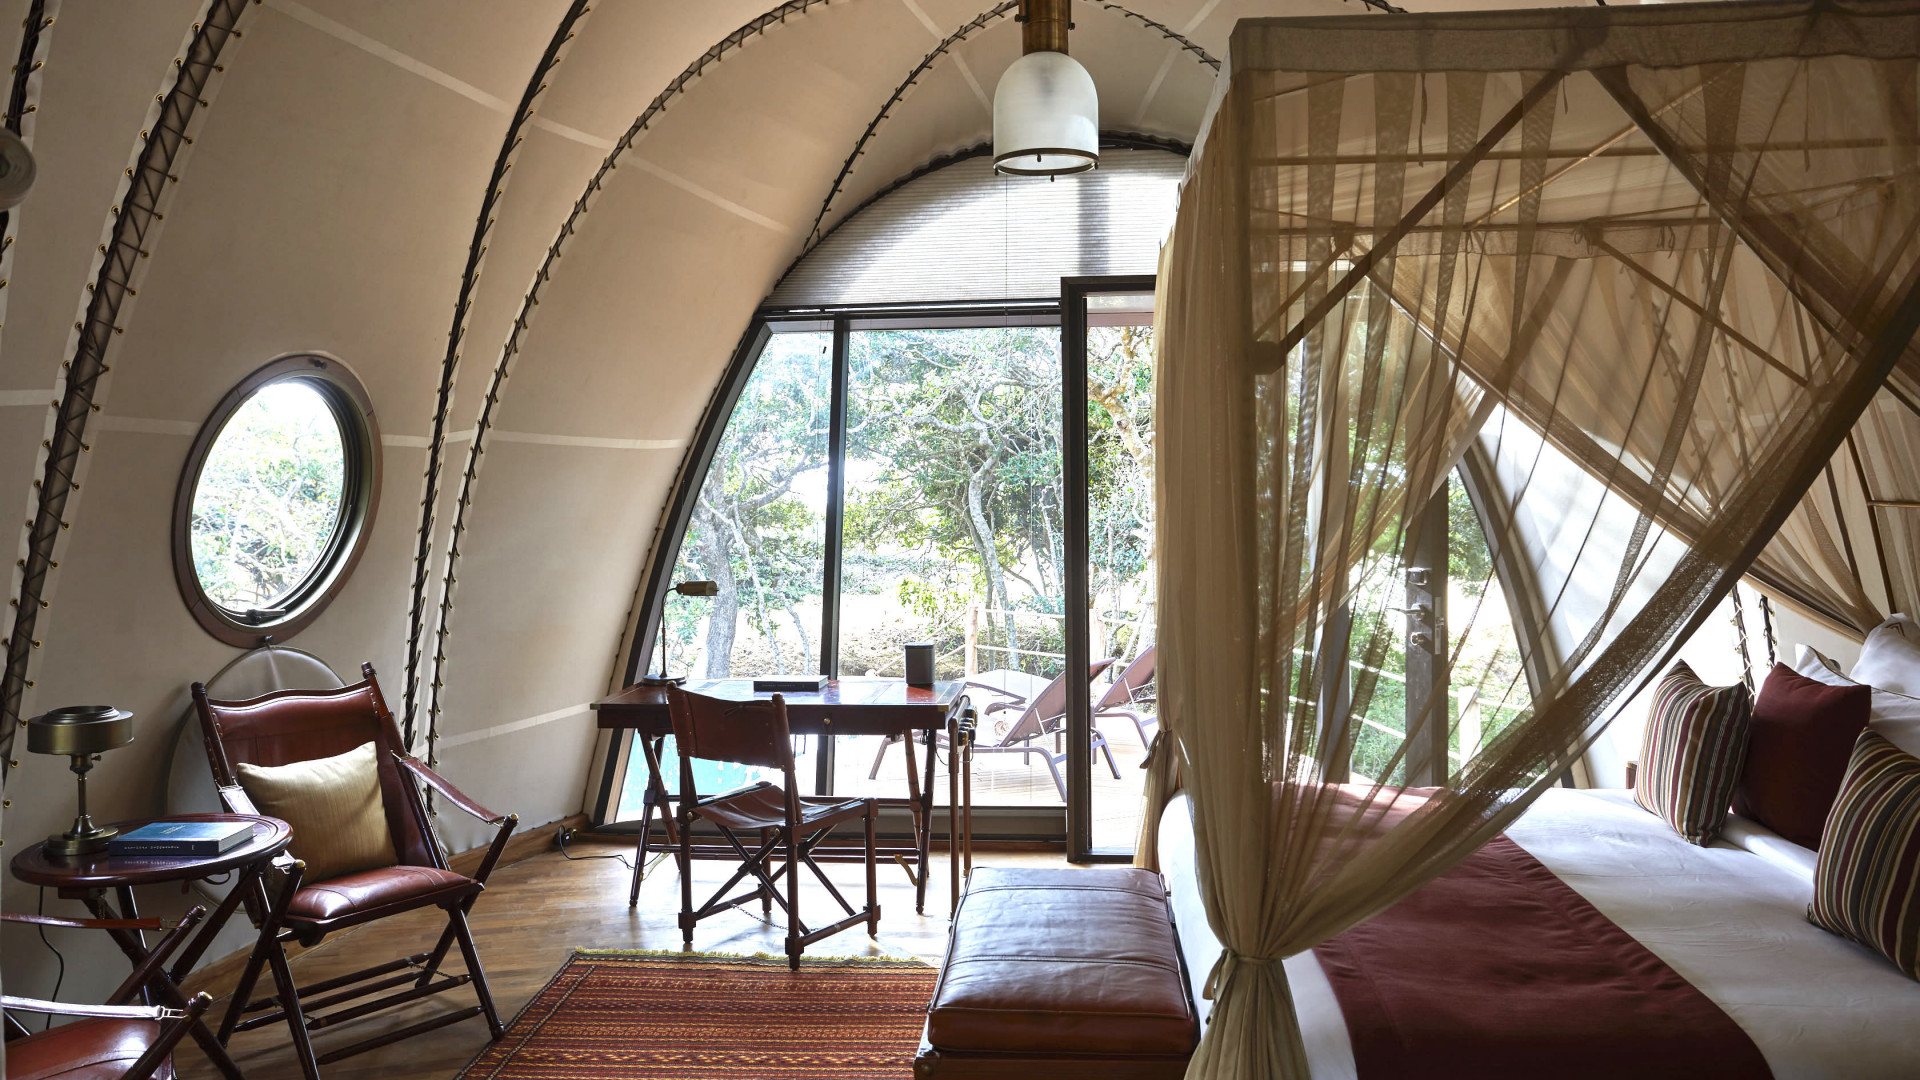 Rooms at Wild Coast Tented Lodge